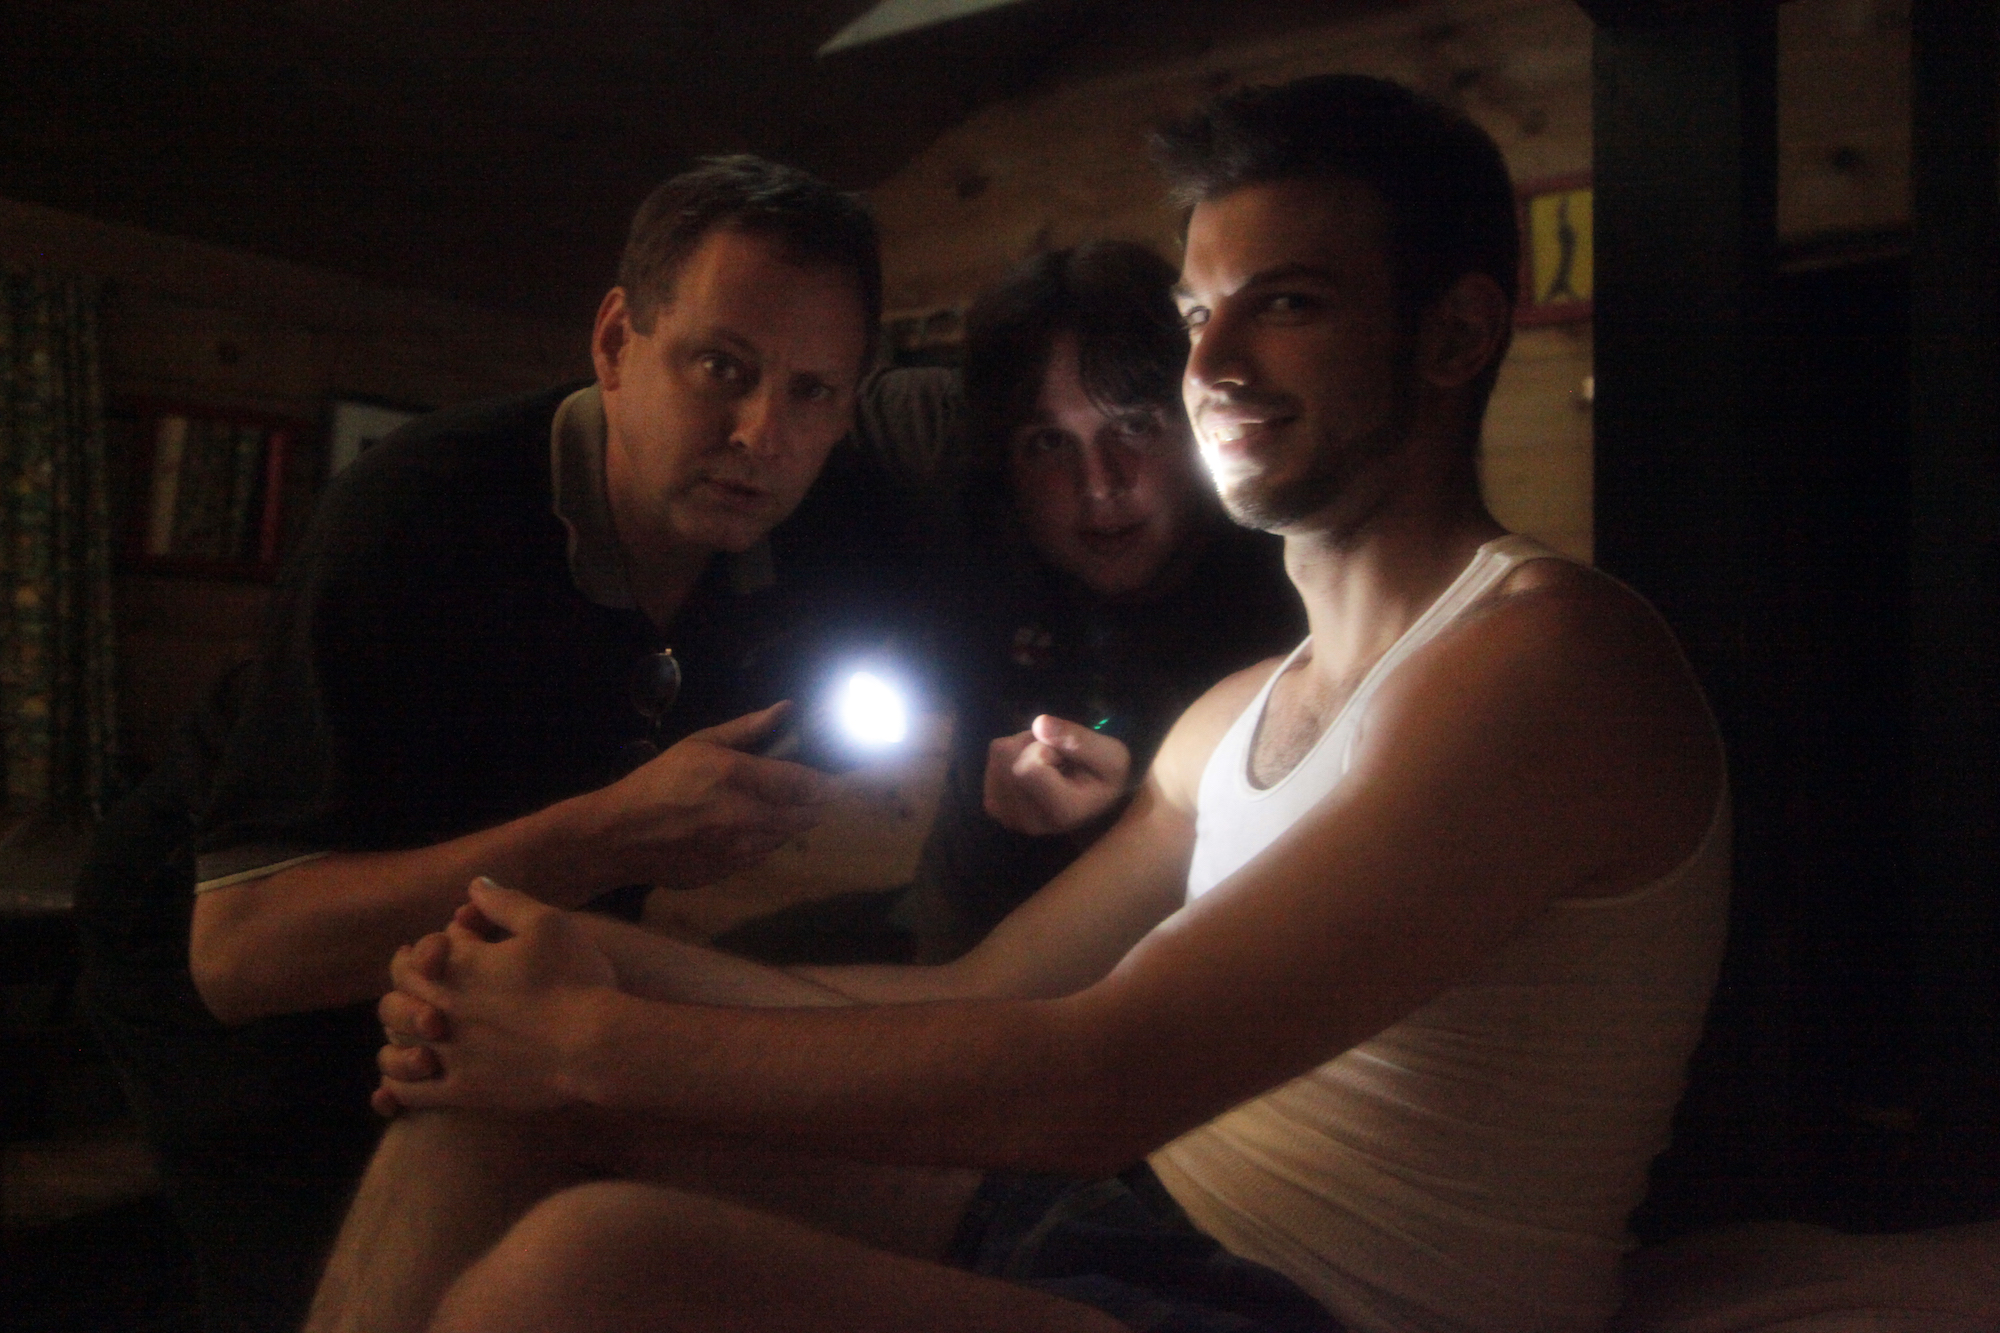 Vasilios Asimakos with crew behind the scenes for Geena Matuson's (@geenamatuson) experimental psychological thriller 'My Big Bad Wolf' (2013).